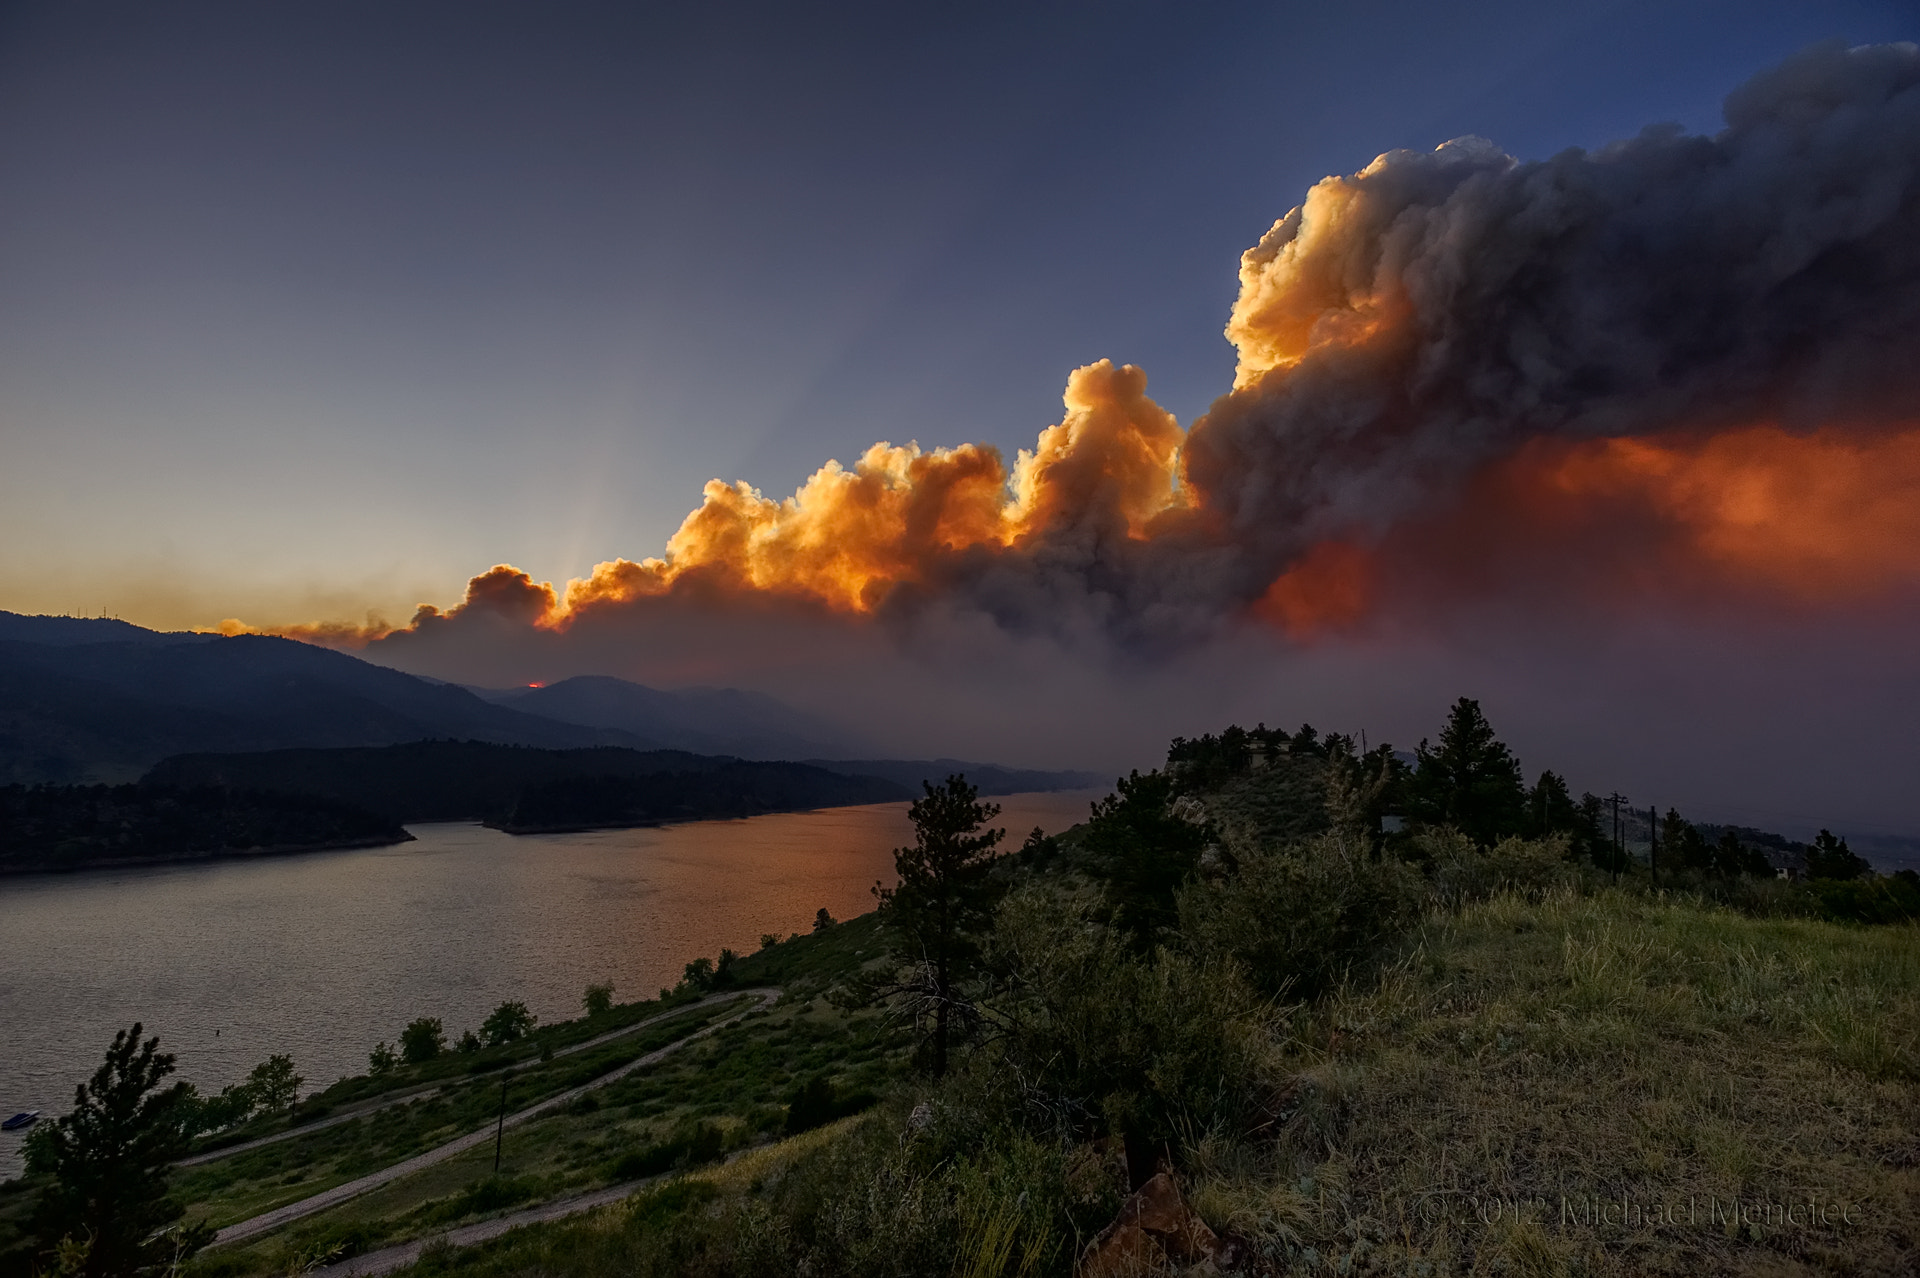 Photograph Explosive Destruction of the High Park Fire: June 10th, 2012 by Michael Menefee on 500px